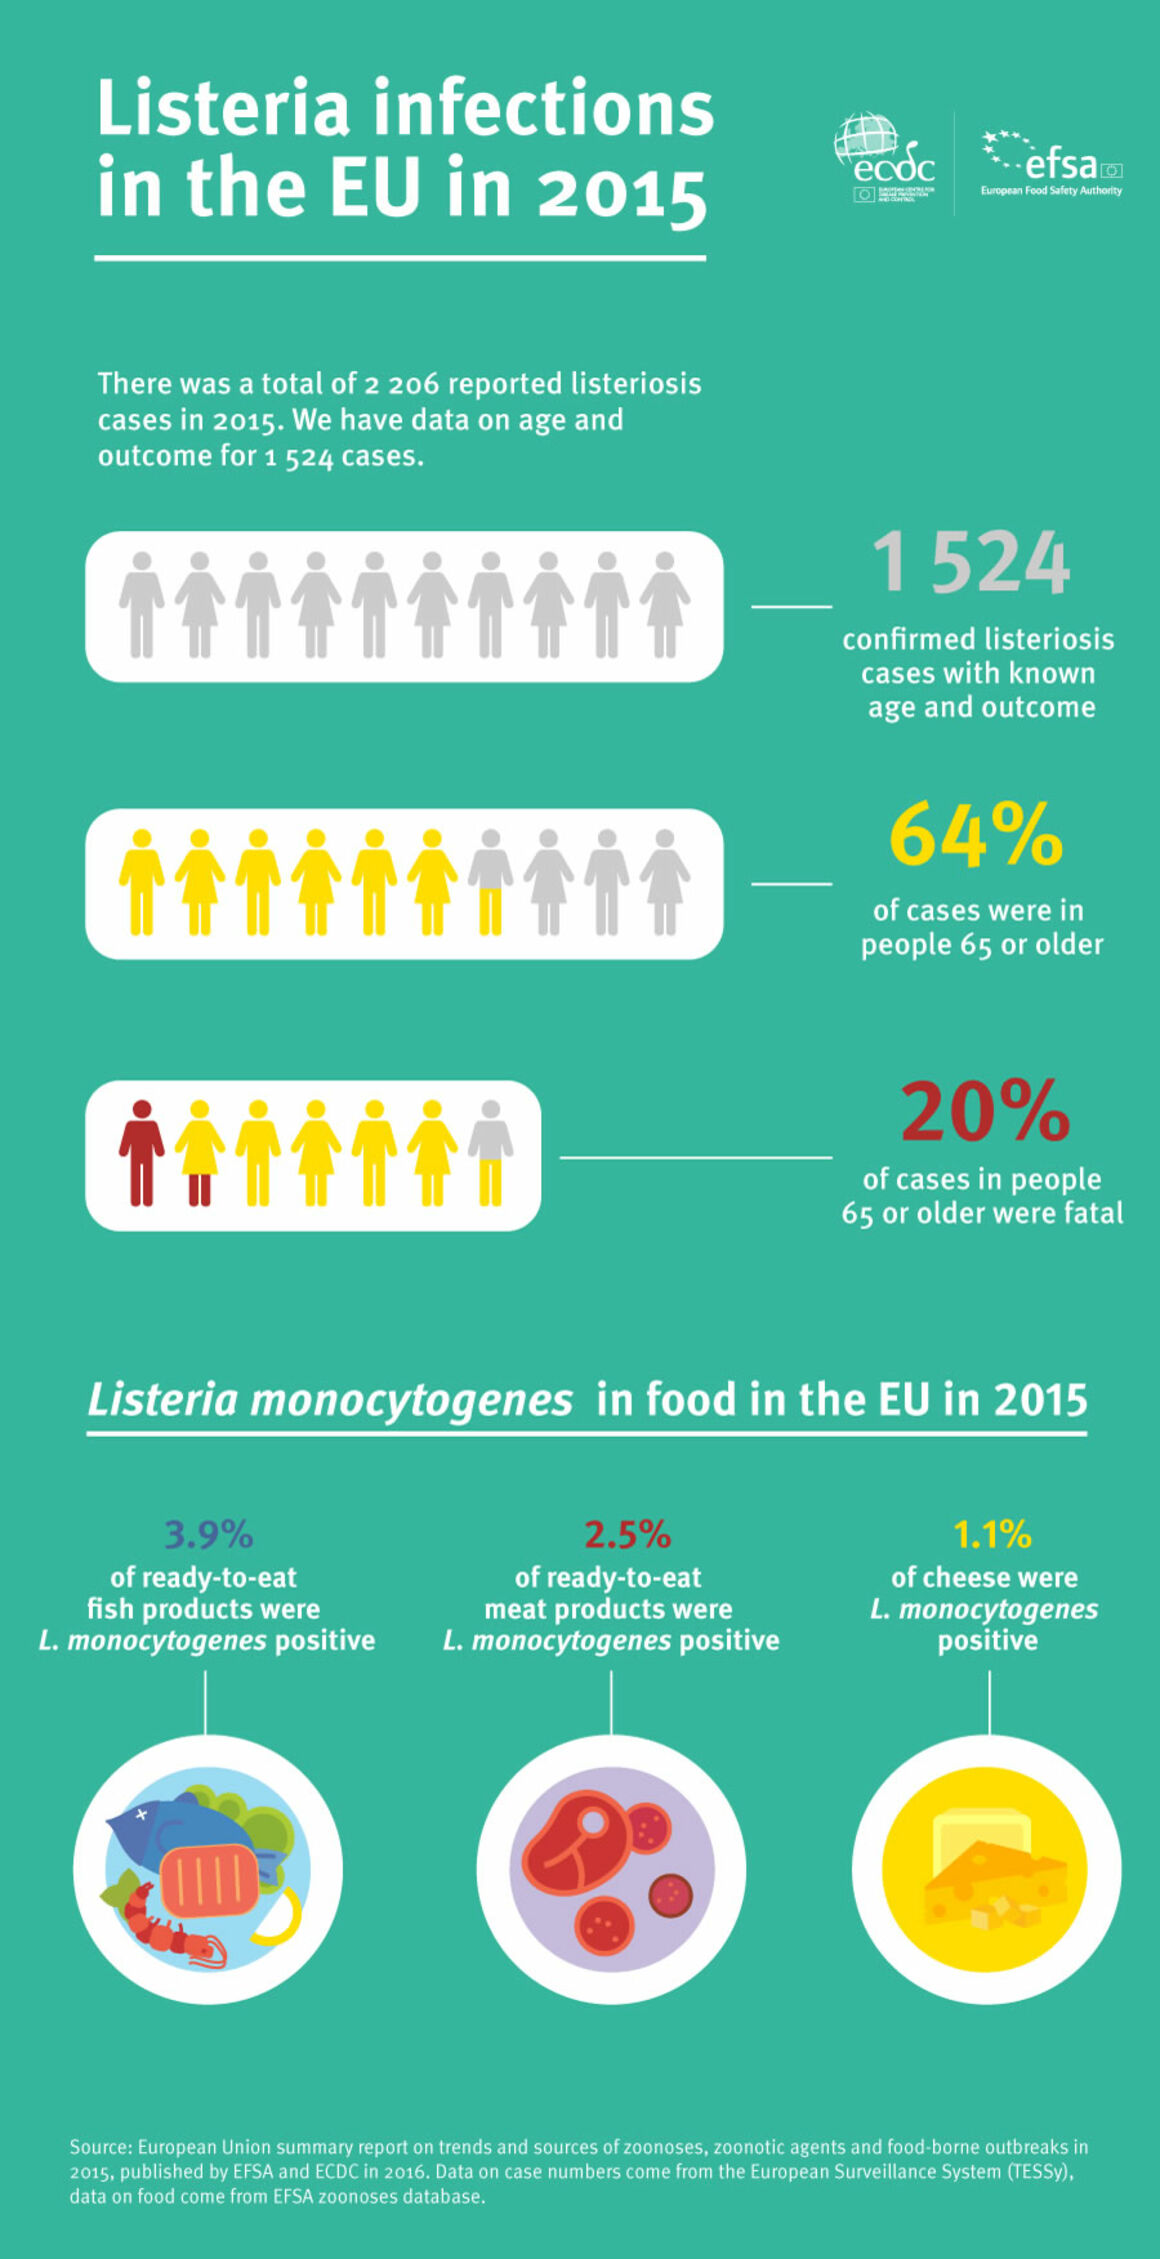 Infographic showing data on listeria infections in the EU in 2015